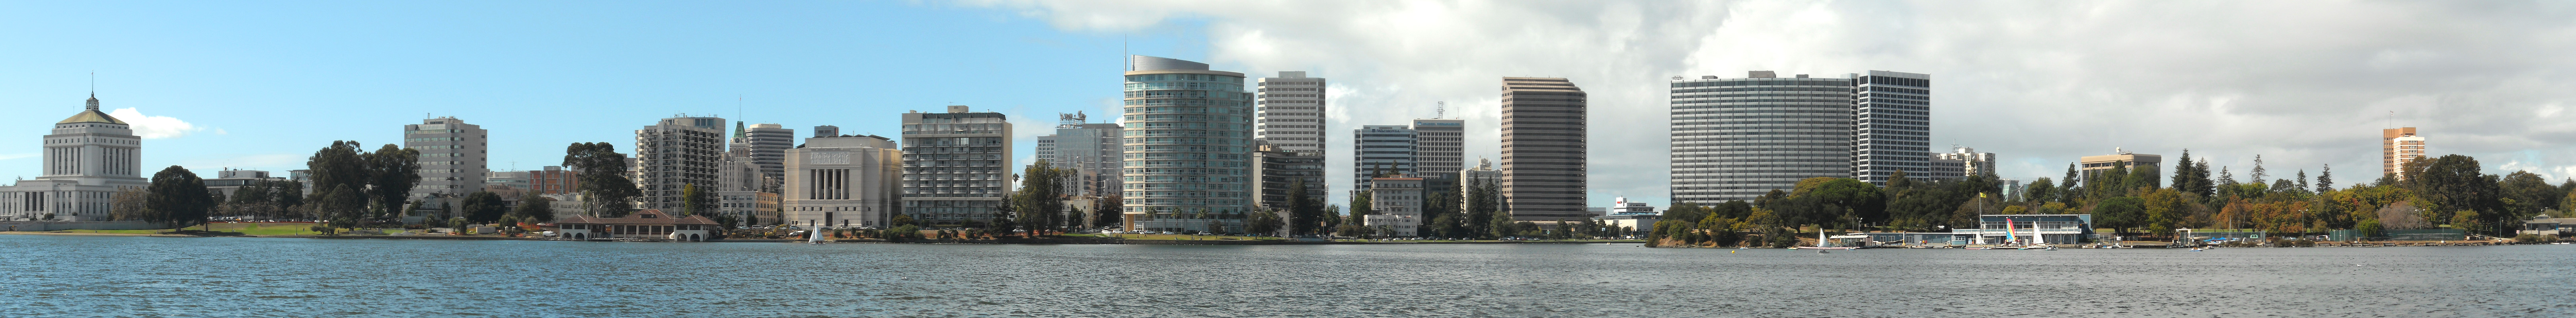 File:Oakland Skyline and Lake Merritt.jpg - Wikimedia Commons